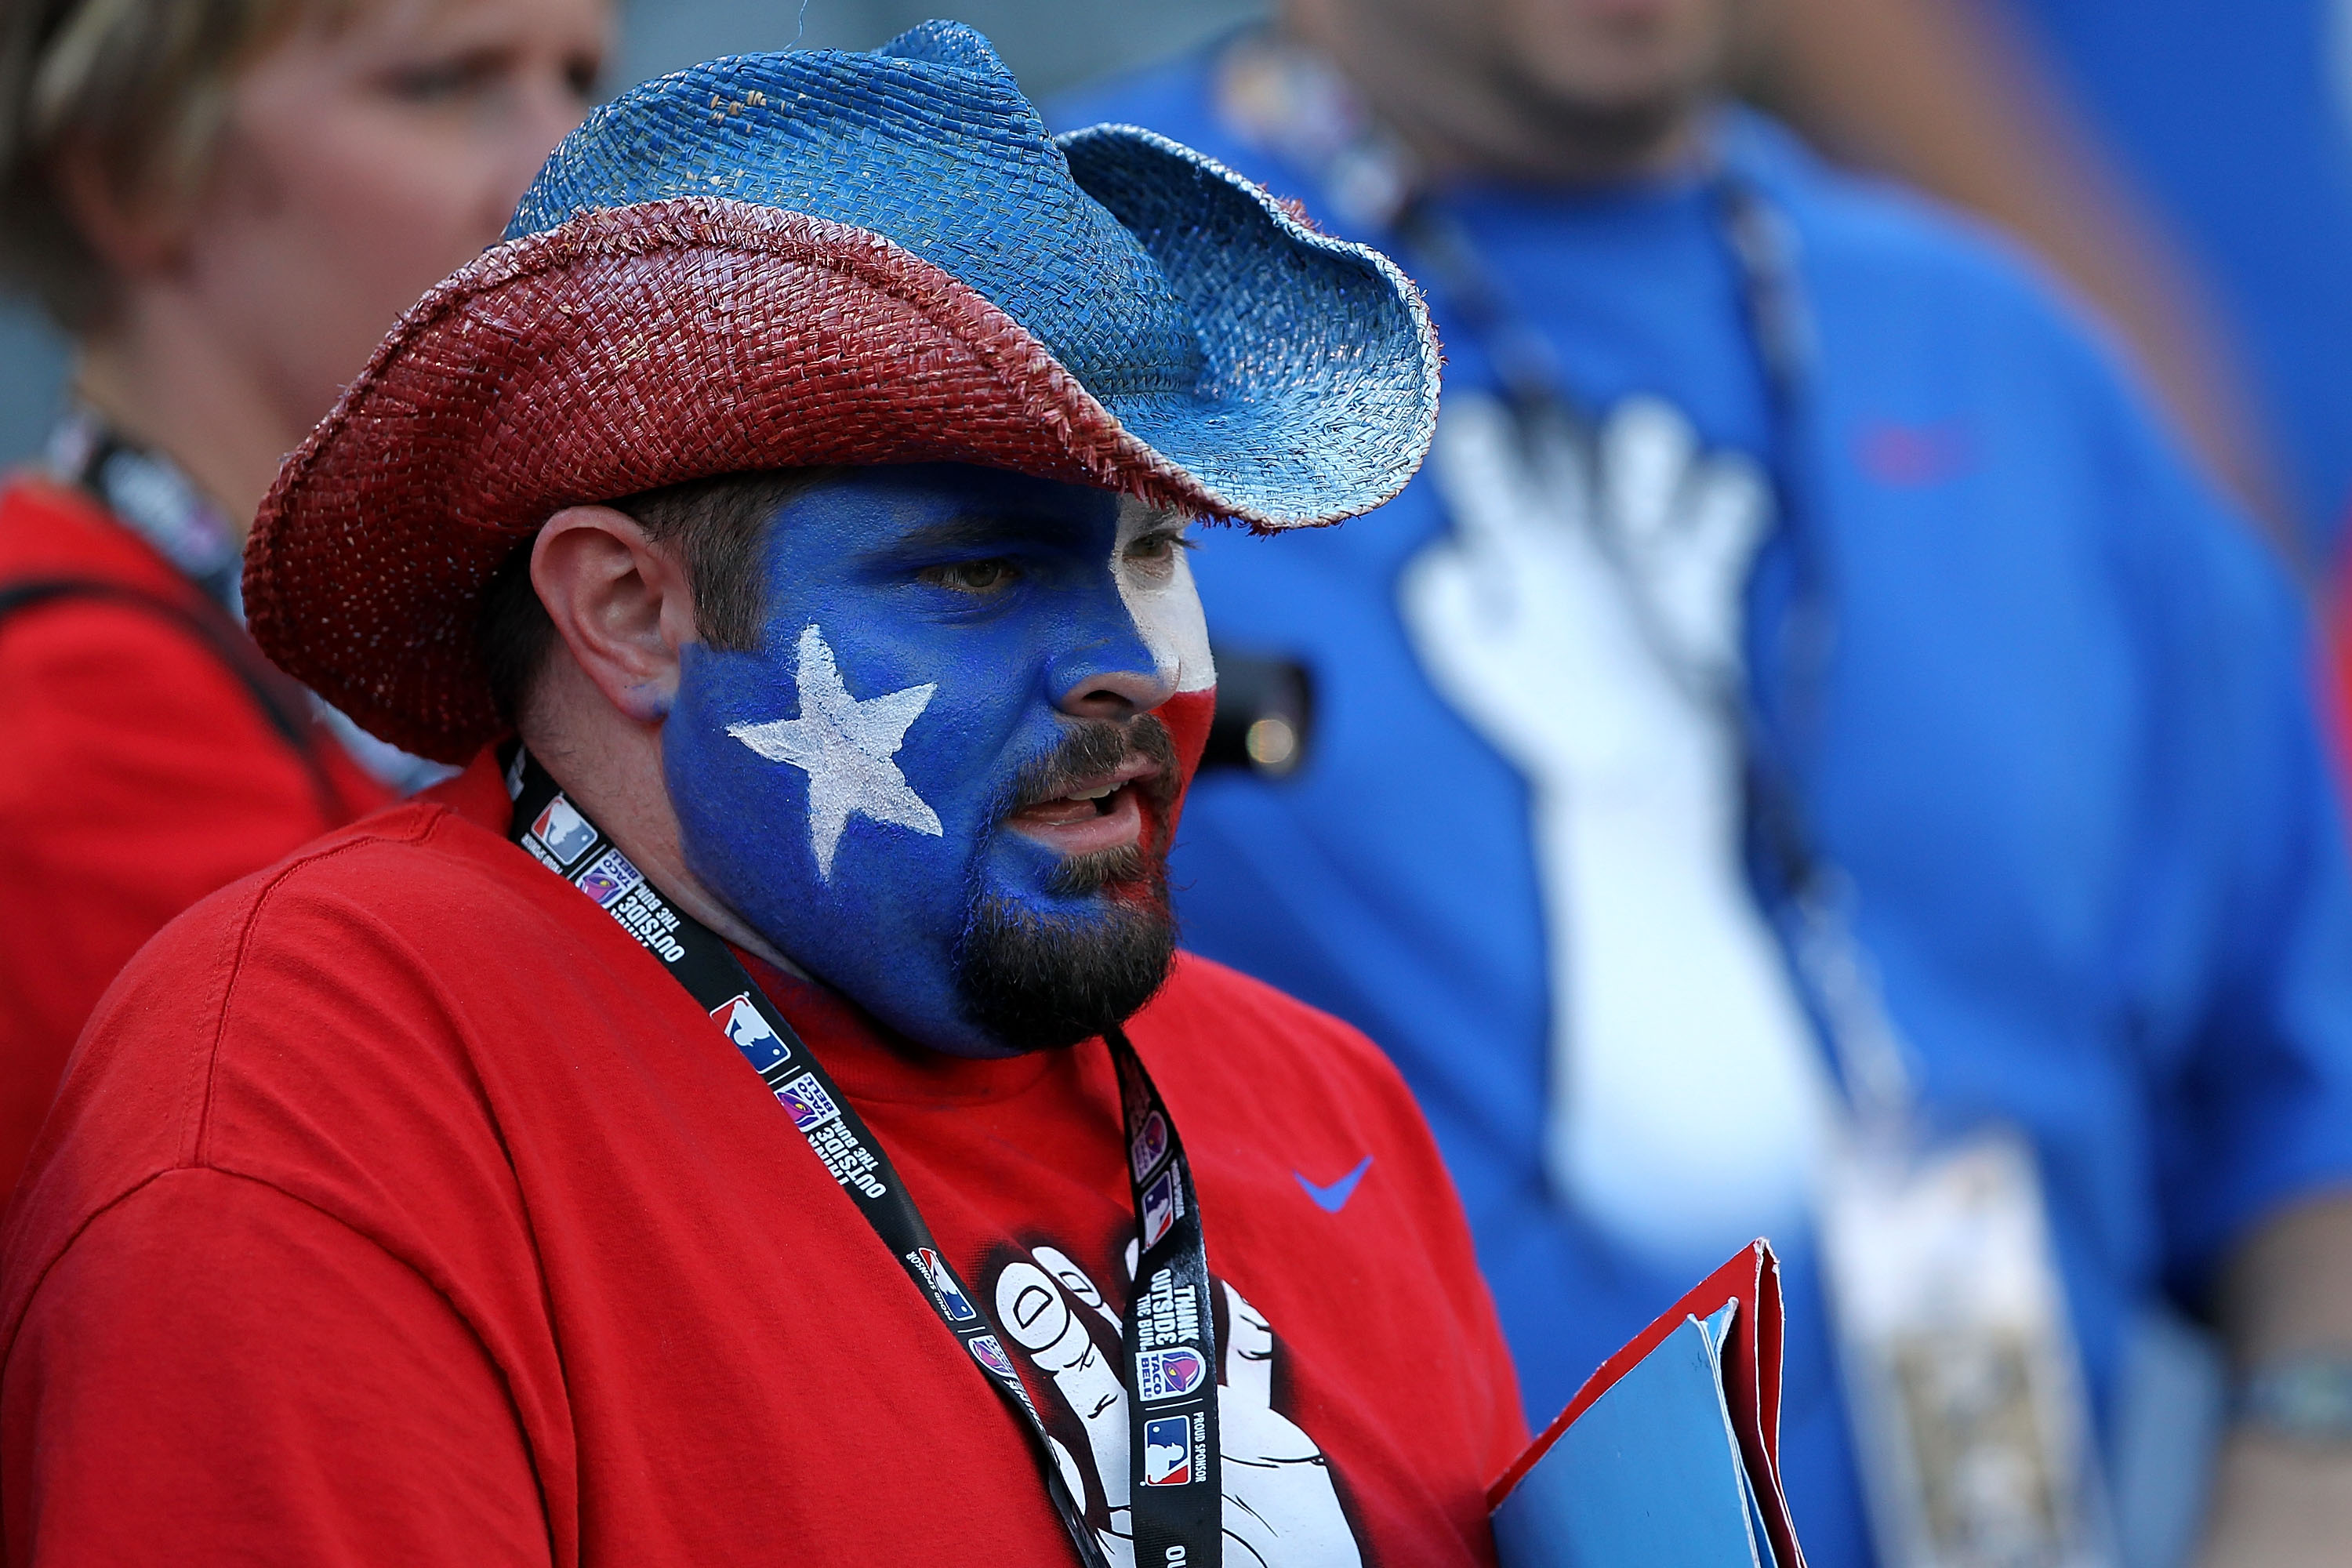 ARLINGTON, TX - NOVEMBER 01:  A fan of the Texas Rangers looks on during batting practice against the San Francisco Giants in Game Five of the 2010 MLB World Series at Rangers Ballpark in Arlington on November 1, 2010 in Arlington, Texas.  (Photo by Ronal